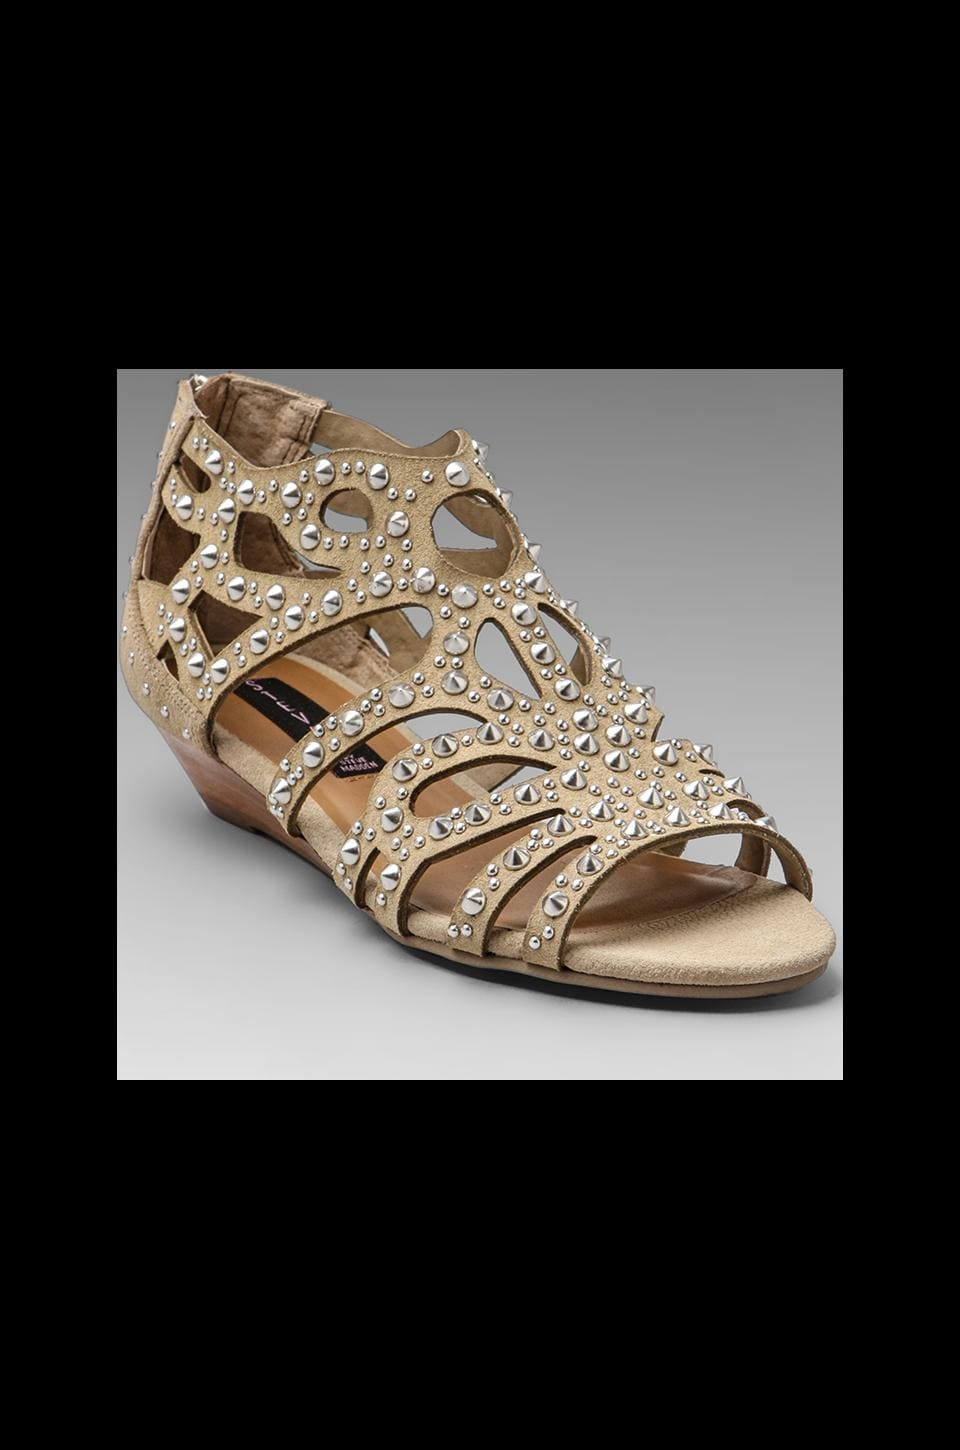 Steven Trex Sandal Wedge in Taupe